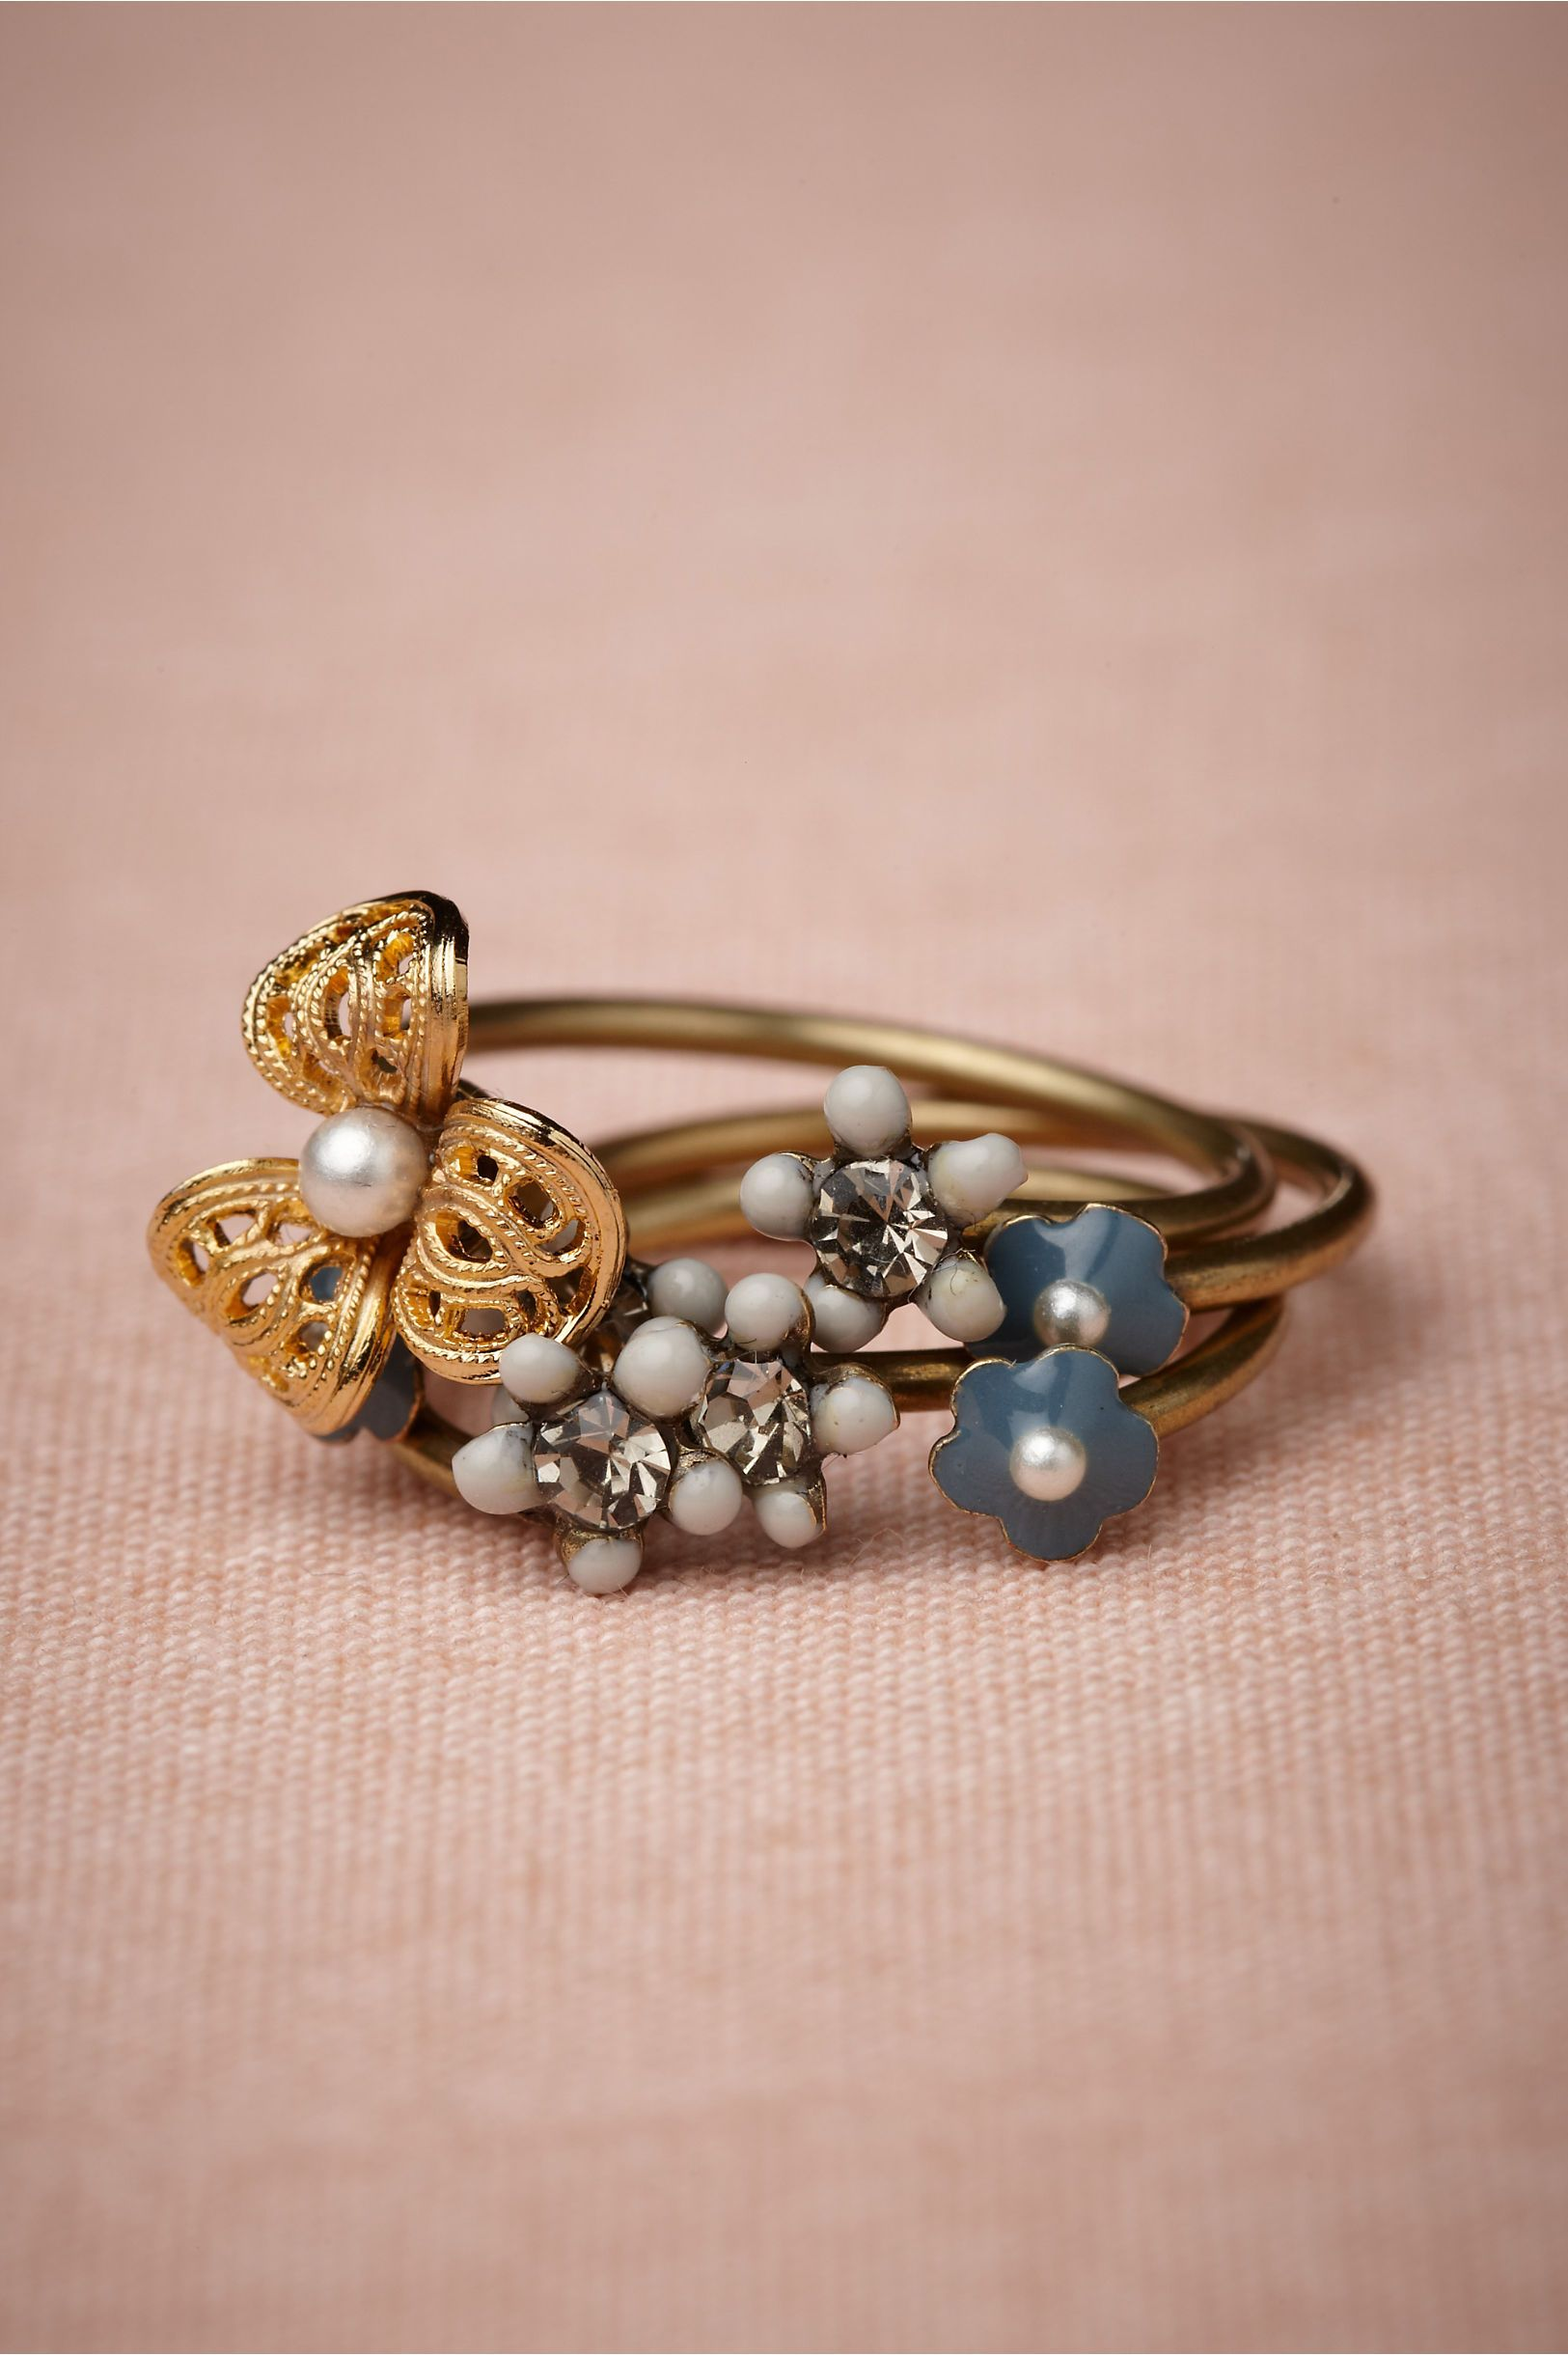 Sunny Skies Ring in SHOP Shoes & Accessories Jewelry Rings at BHLDN ...